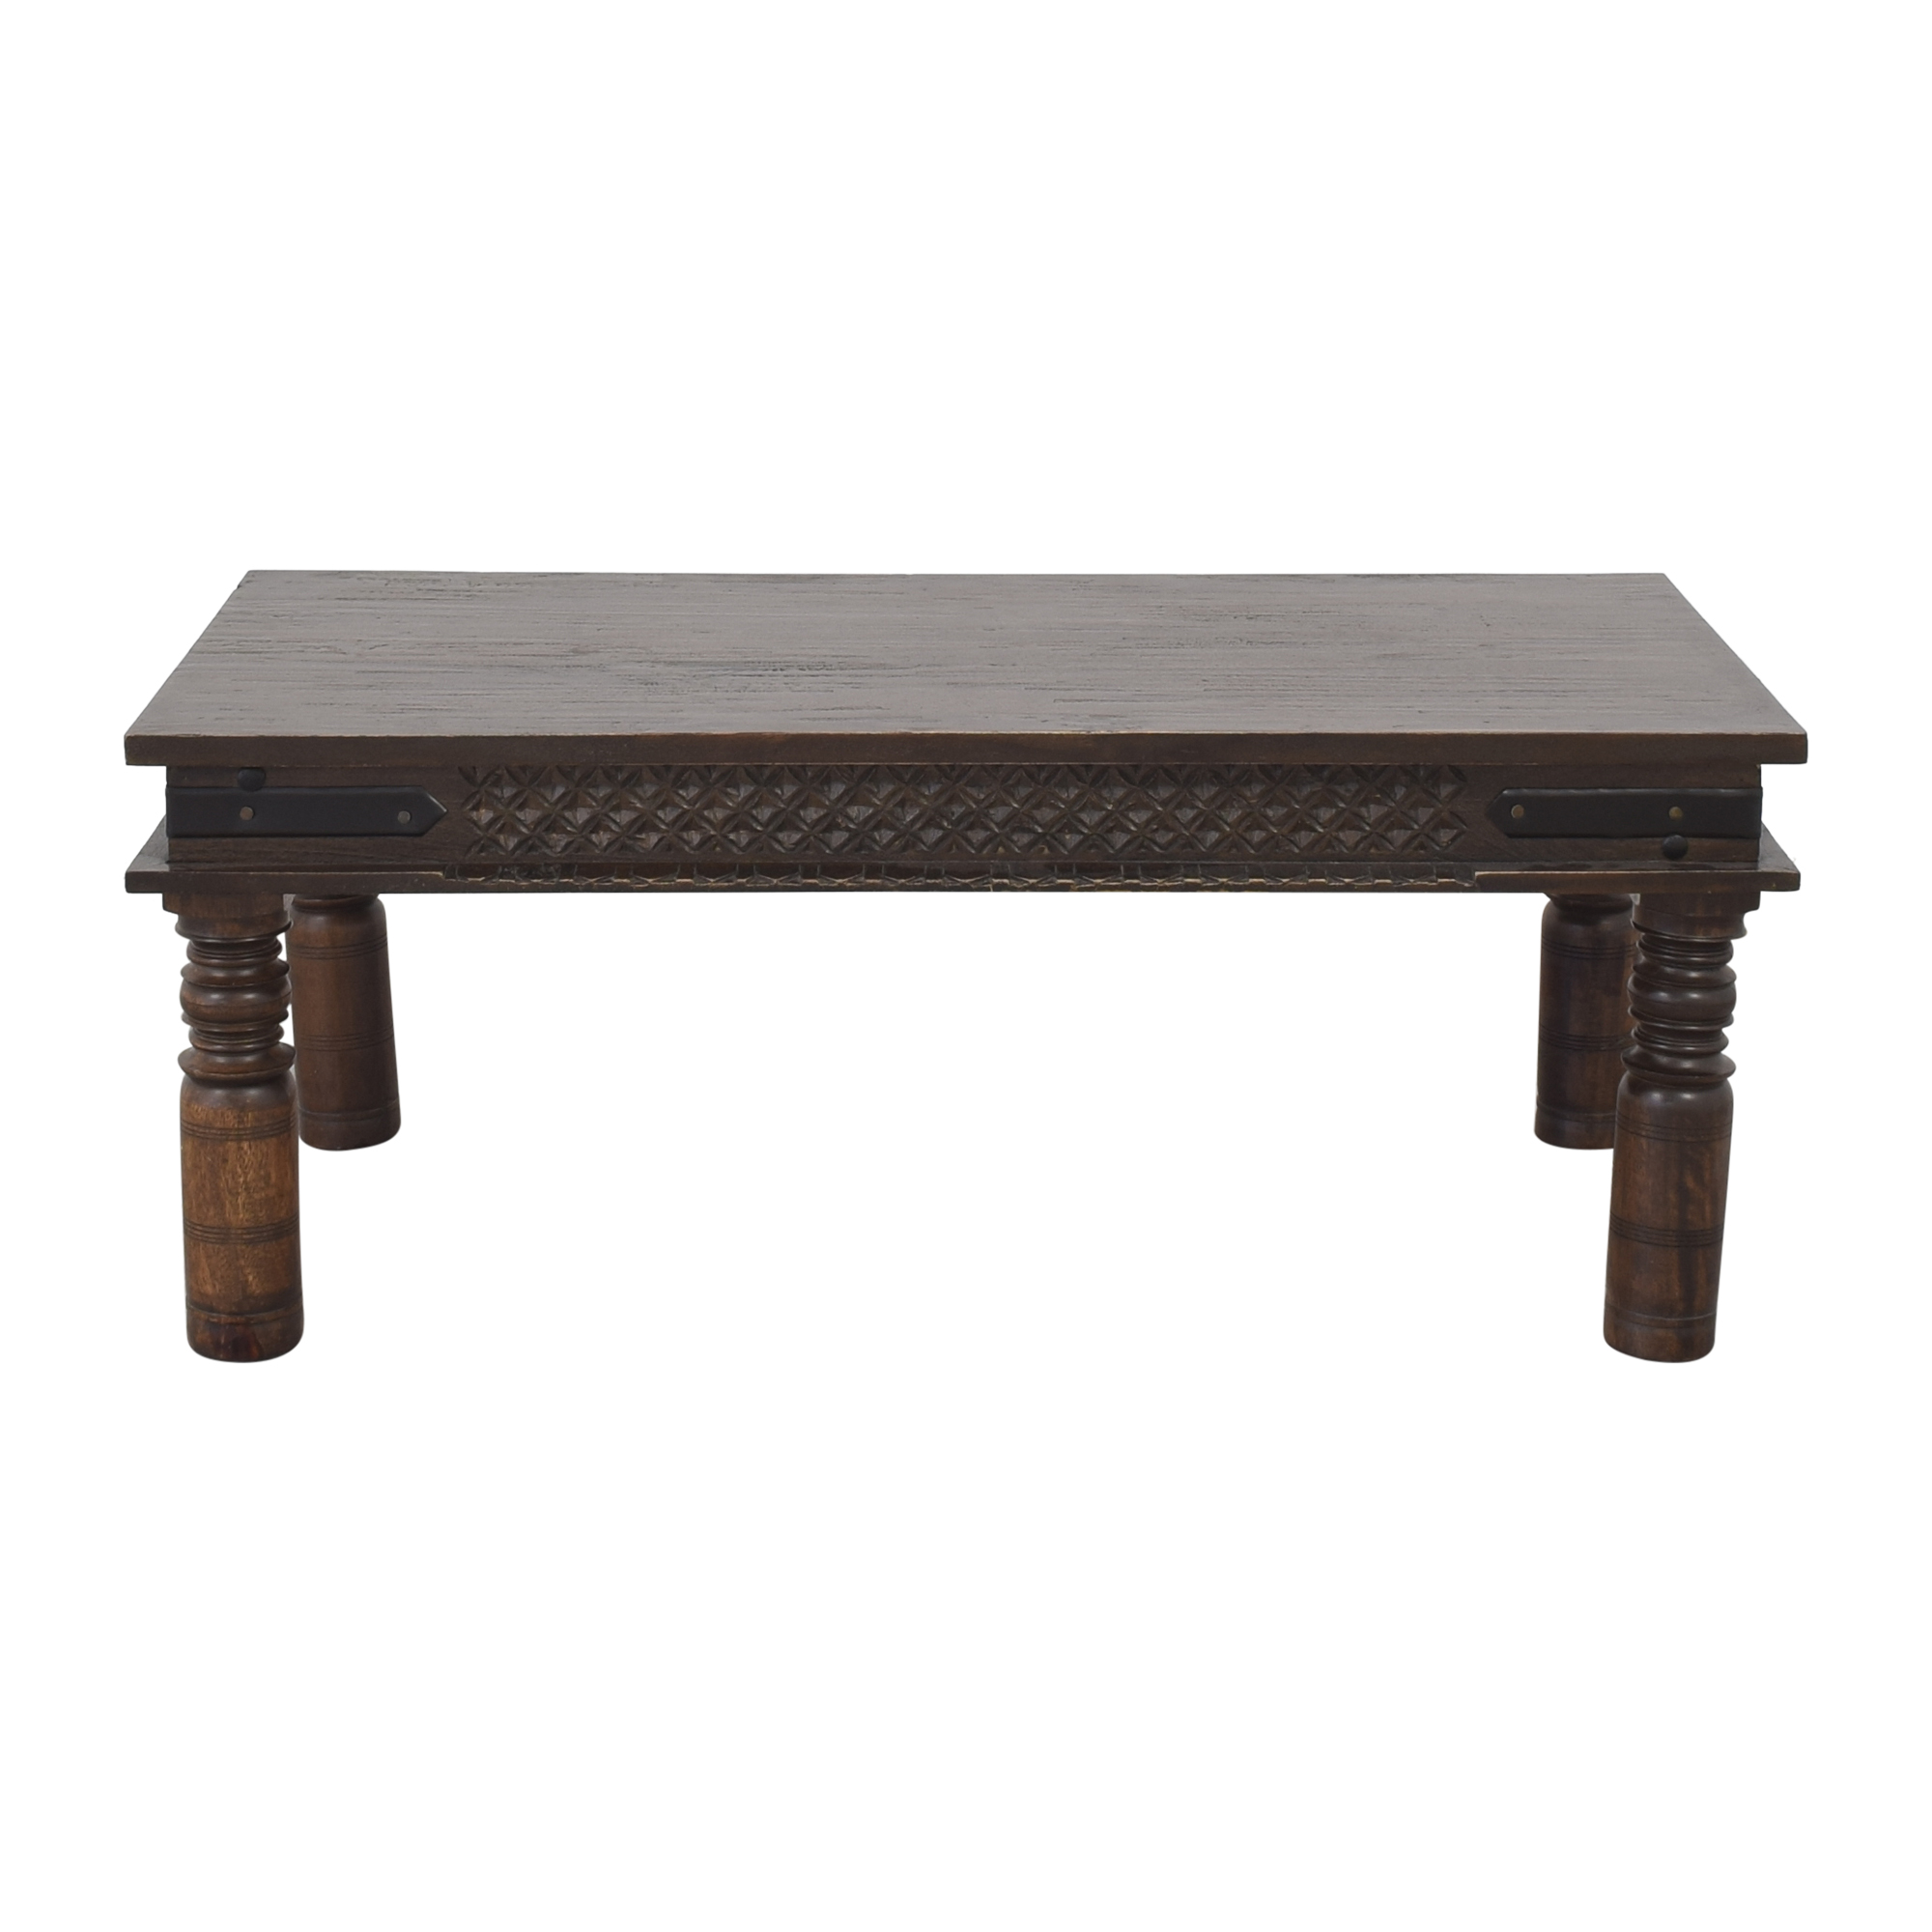 Pottery Barn Pottery Barn Turned Leg Coffee Table dimensions